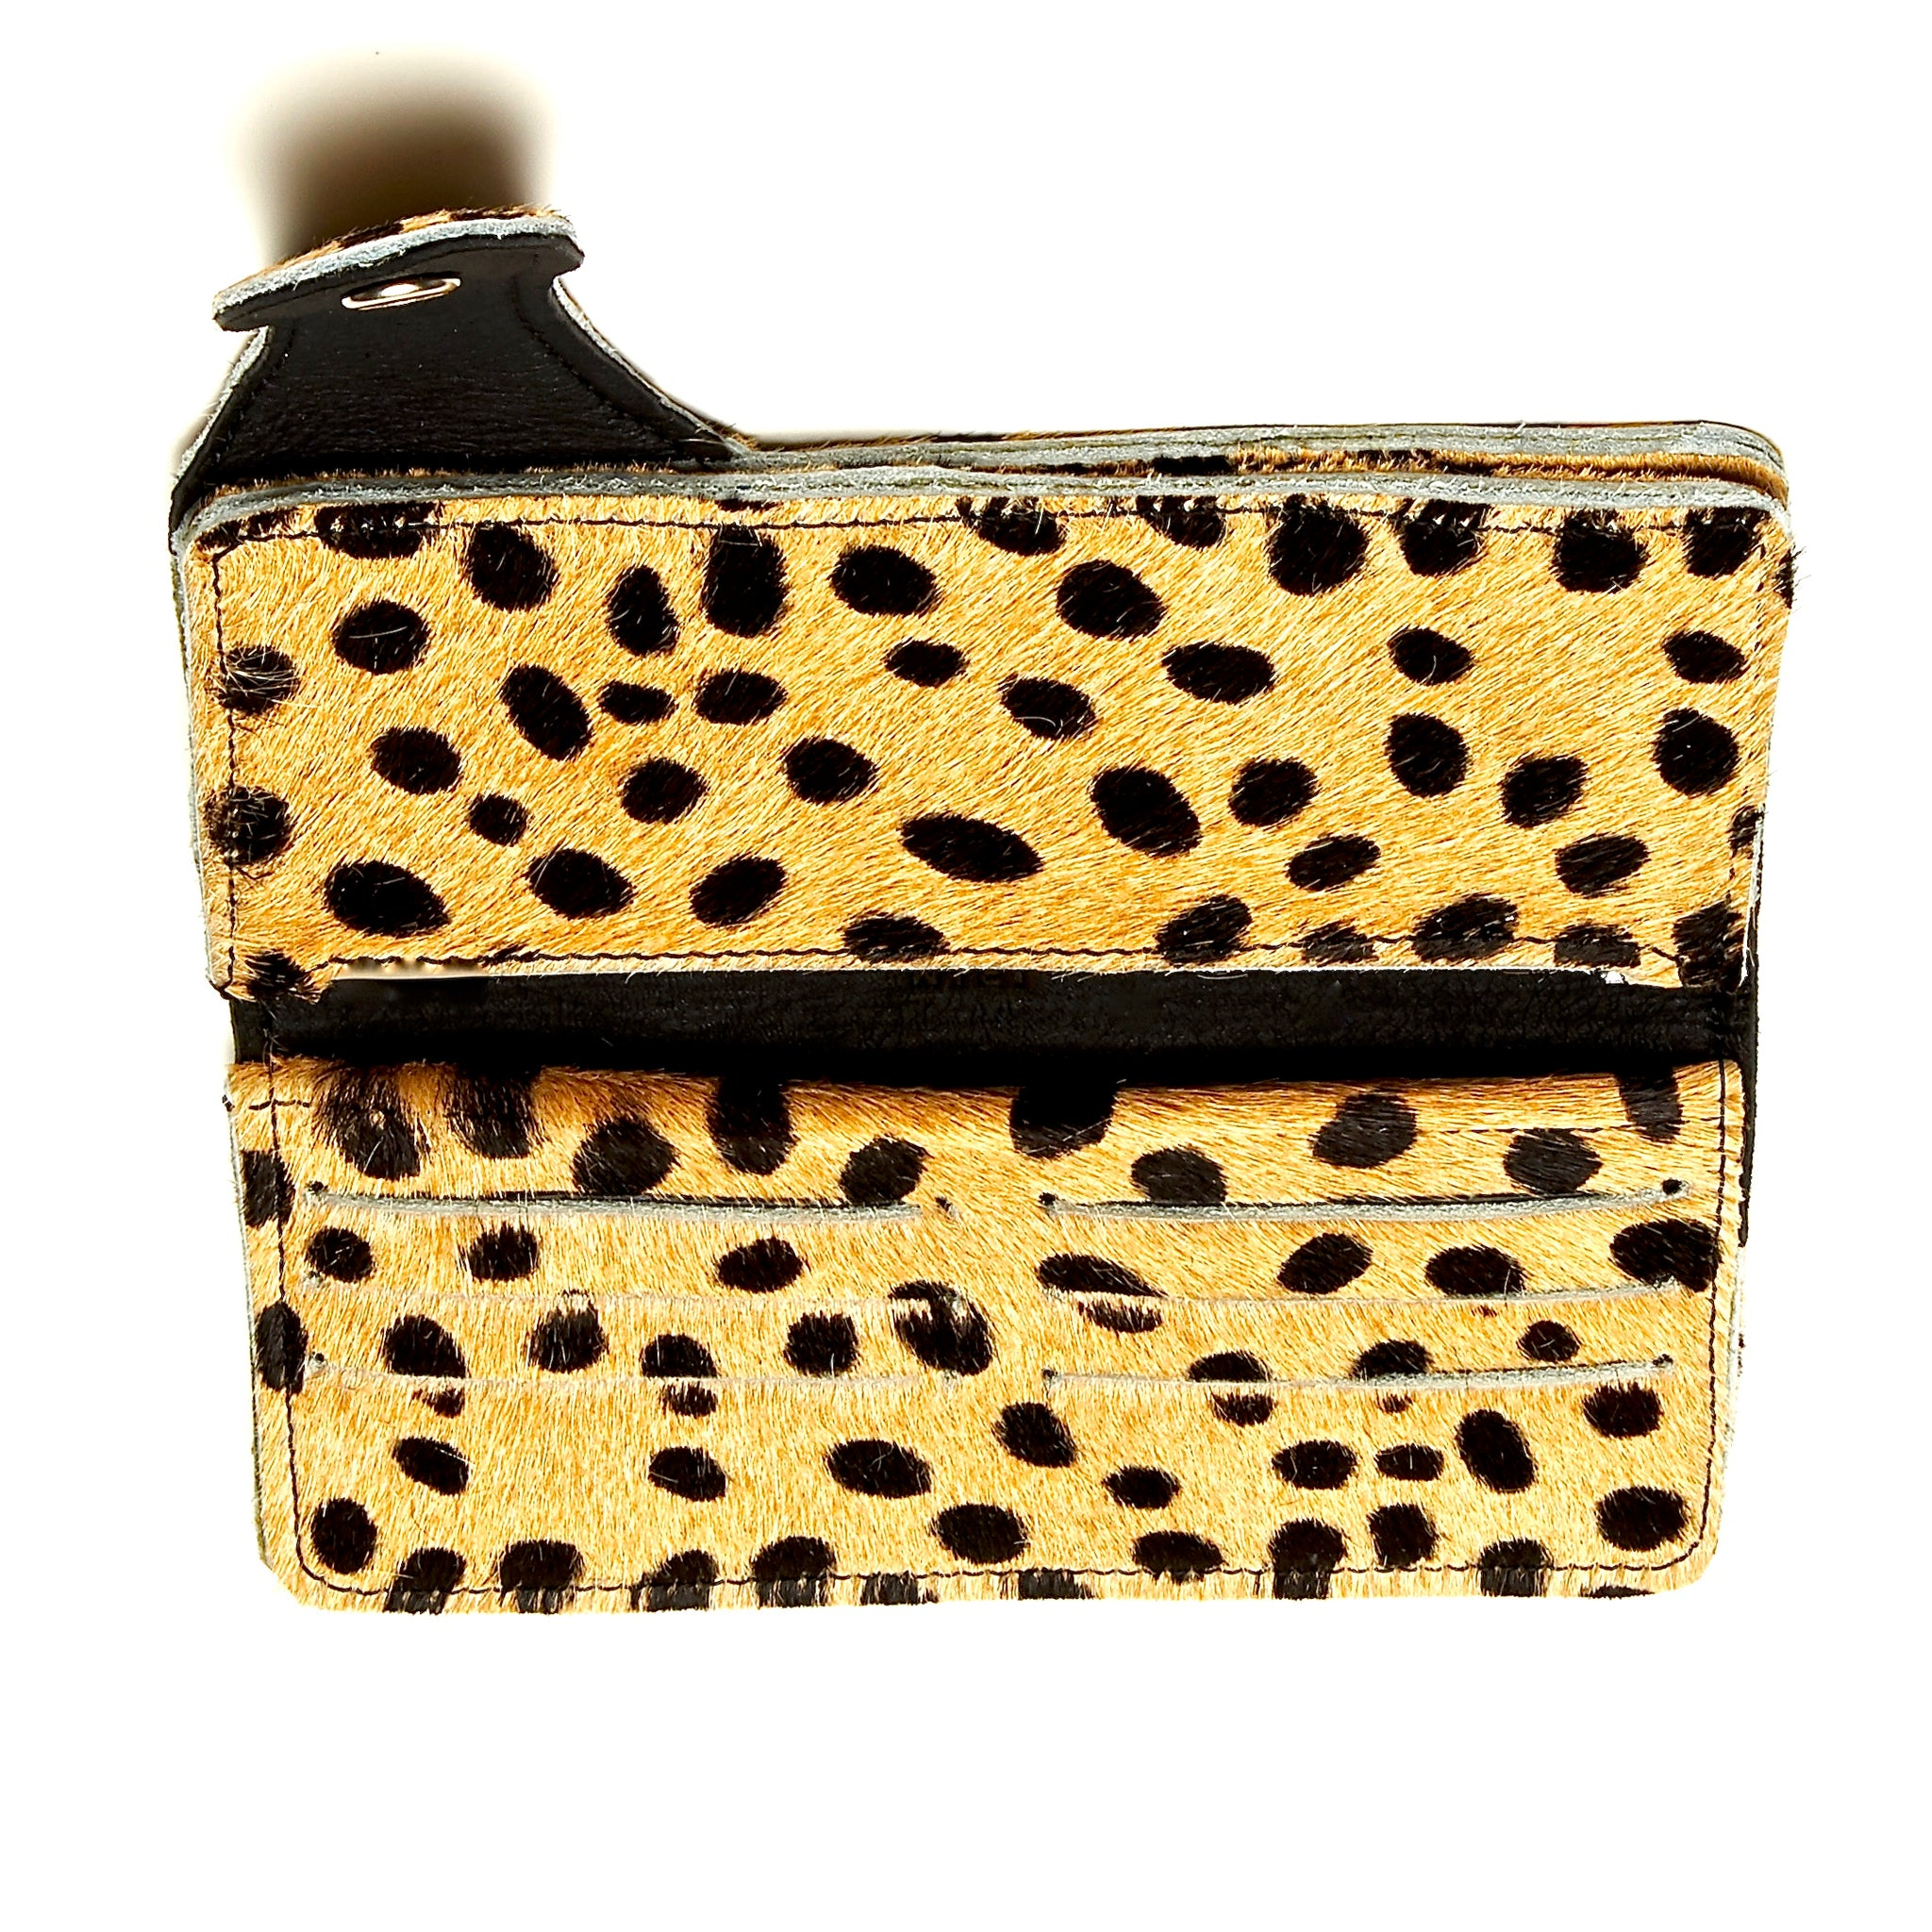 CHEETAH PATTERNED HAIR-ON COWHIDE BIKER WALLET. by nyet jewelry